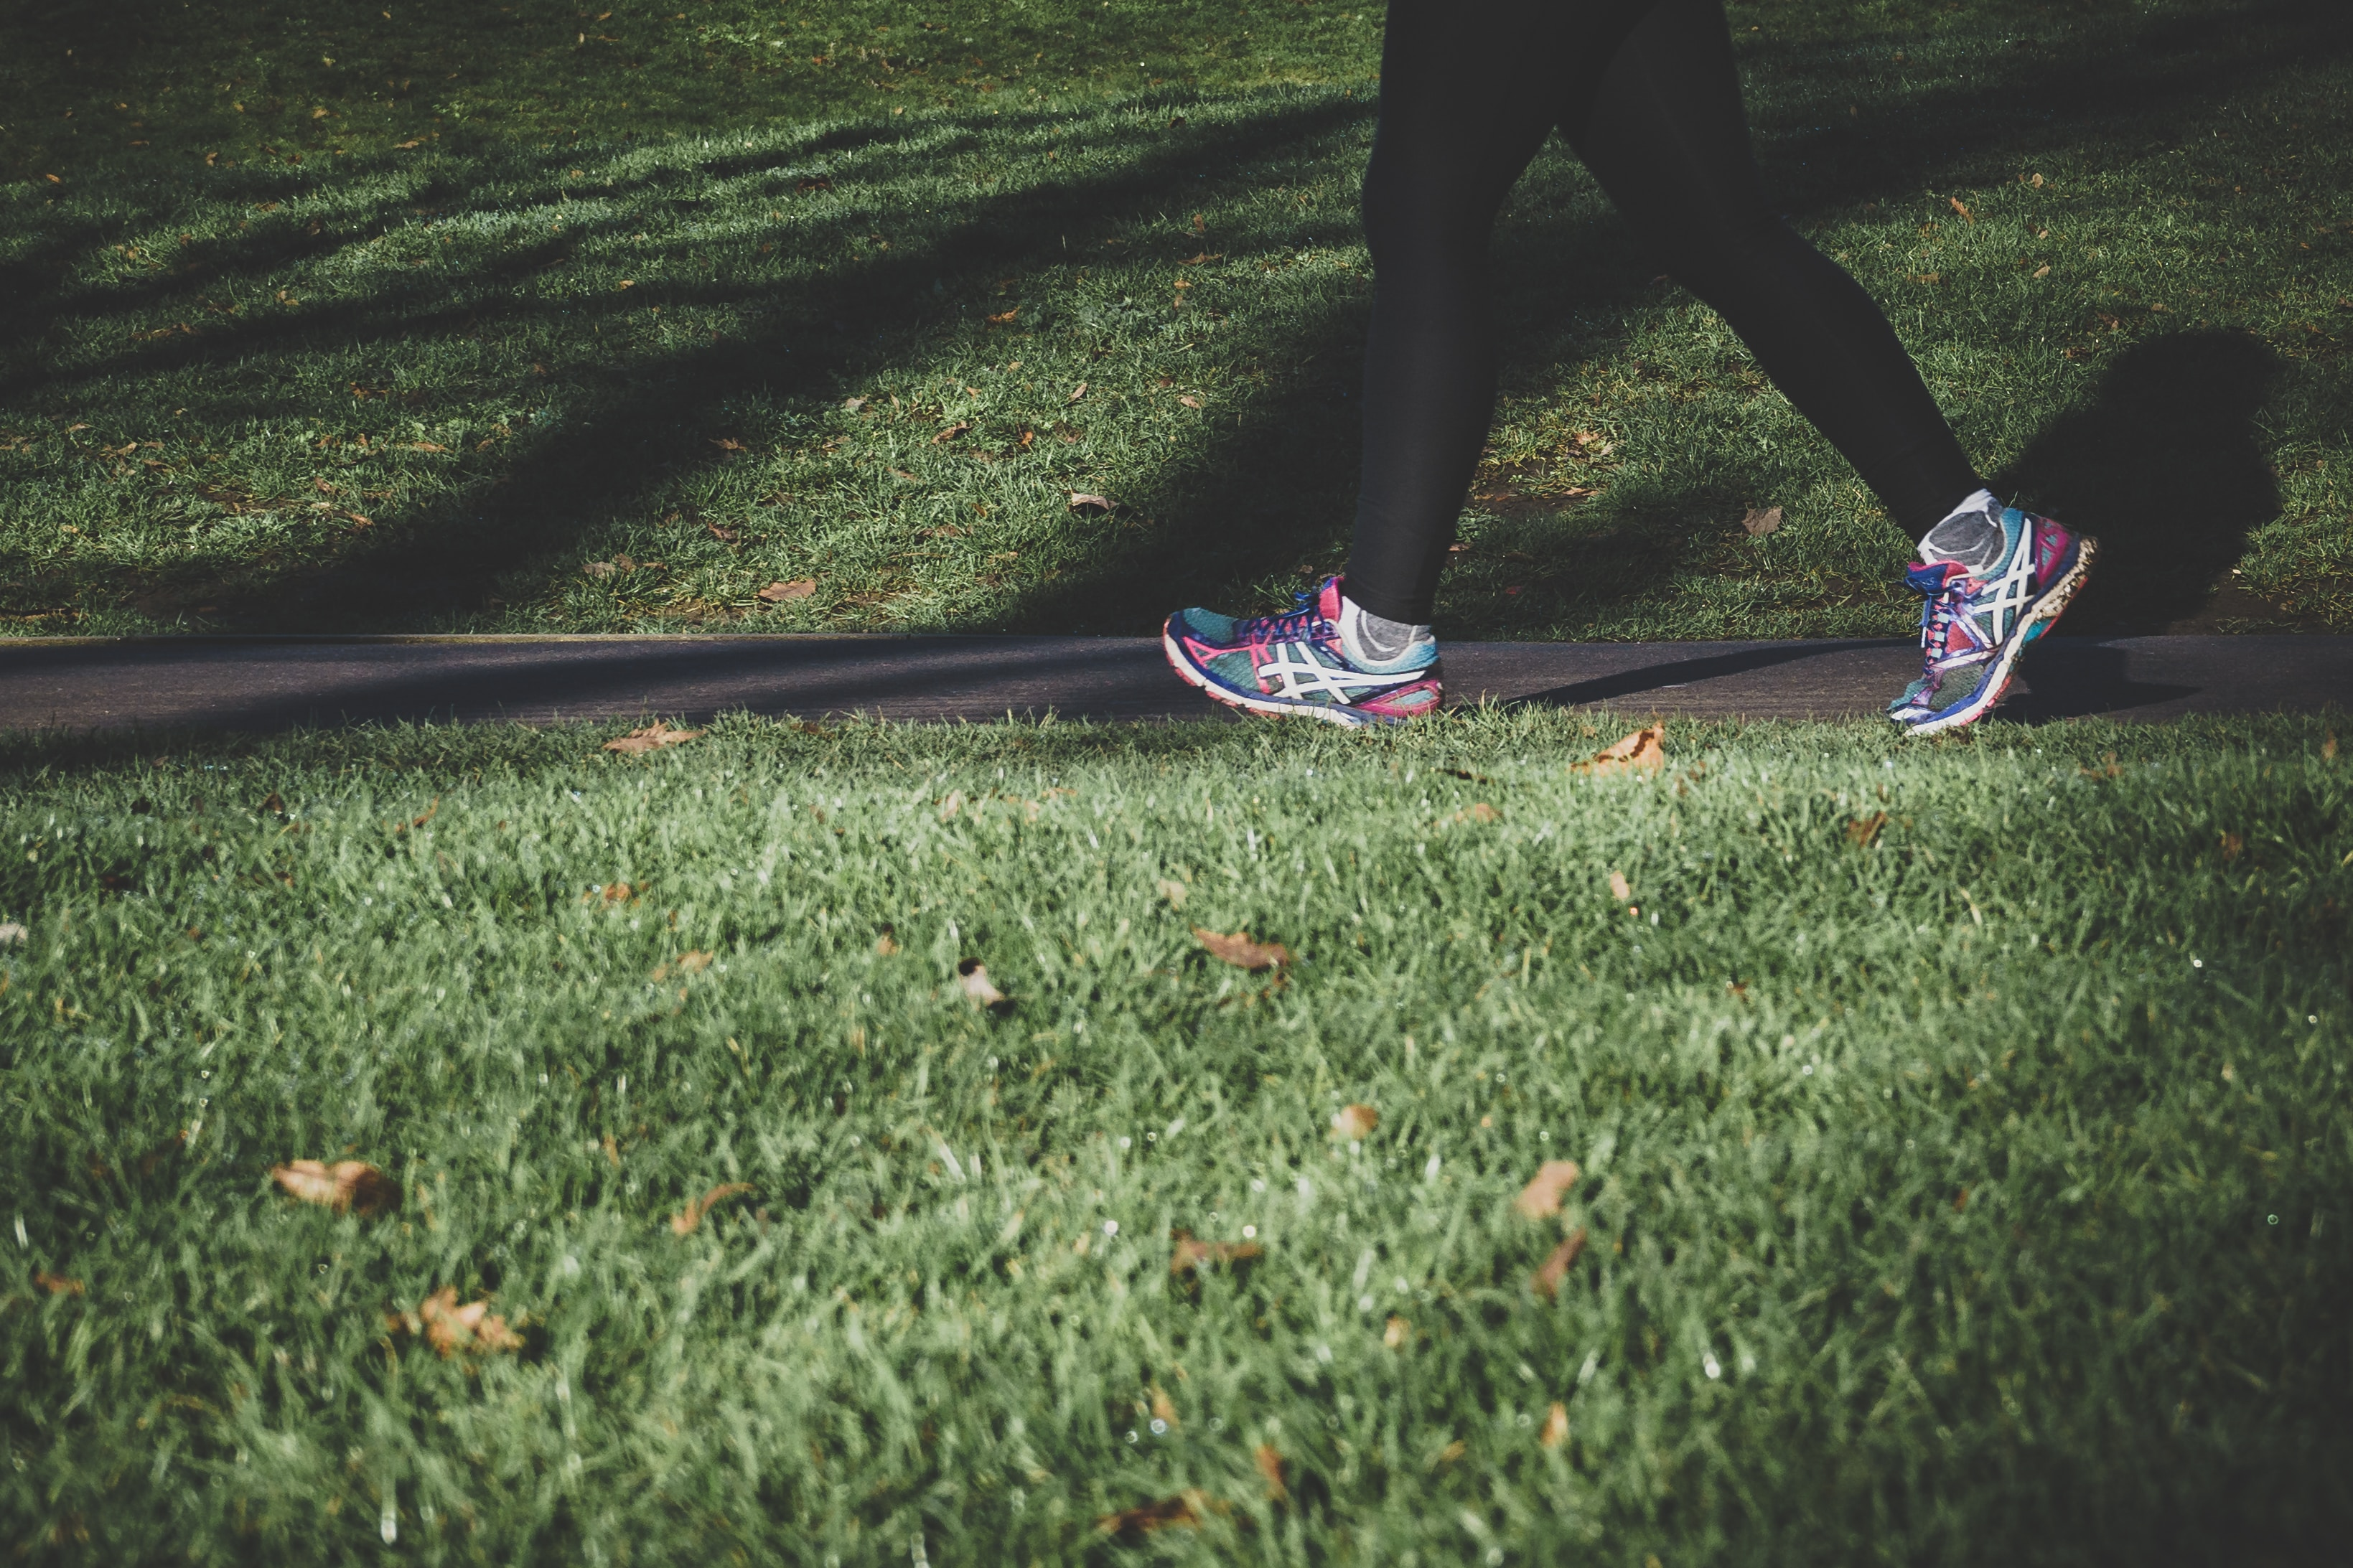 A photo of a person's legs as they walk on a trail between two grassy fields